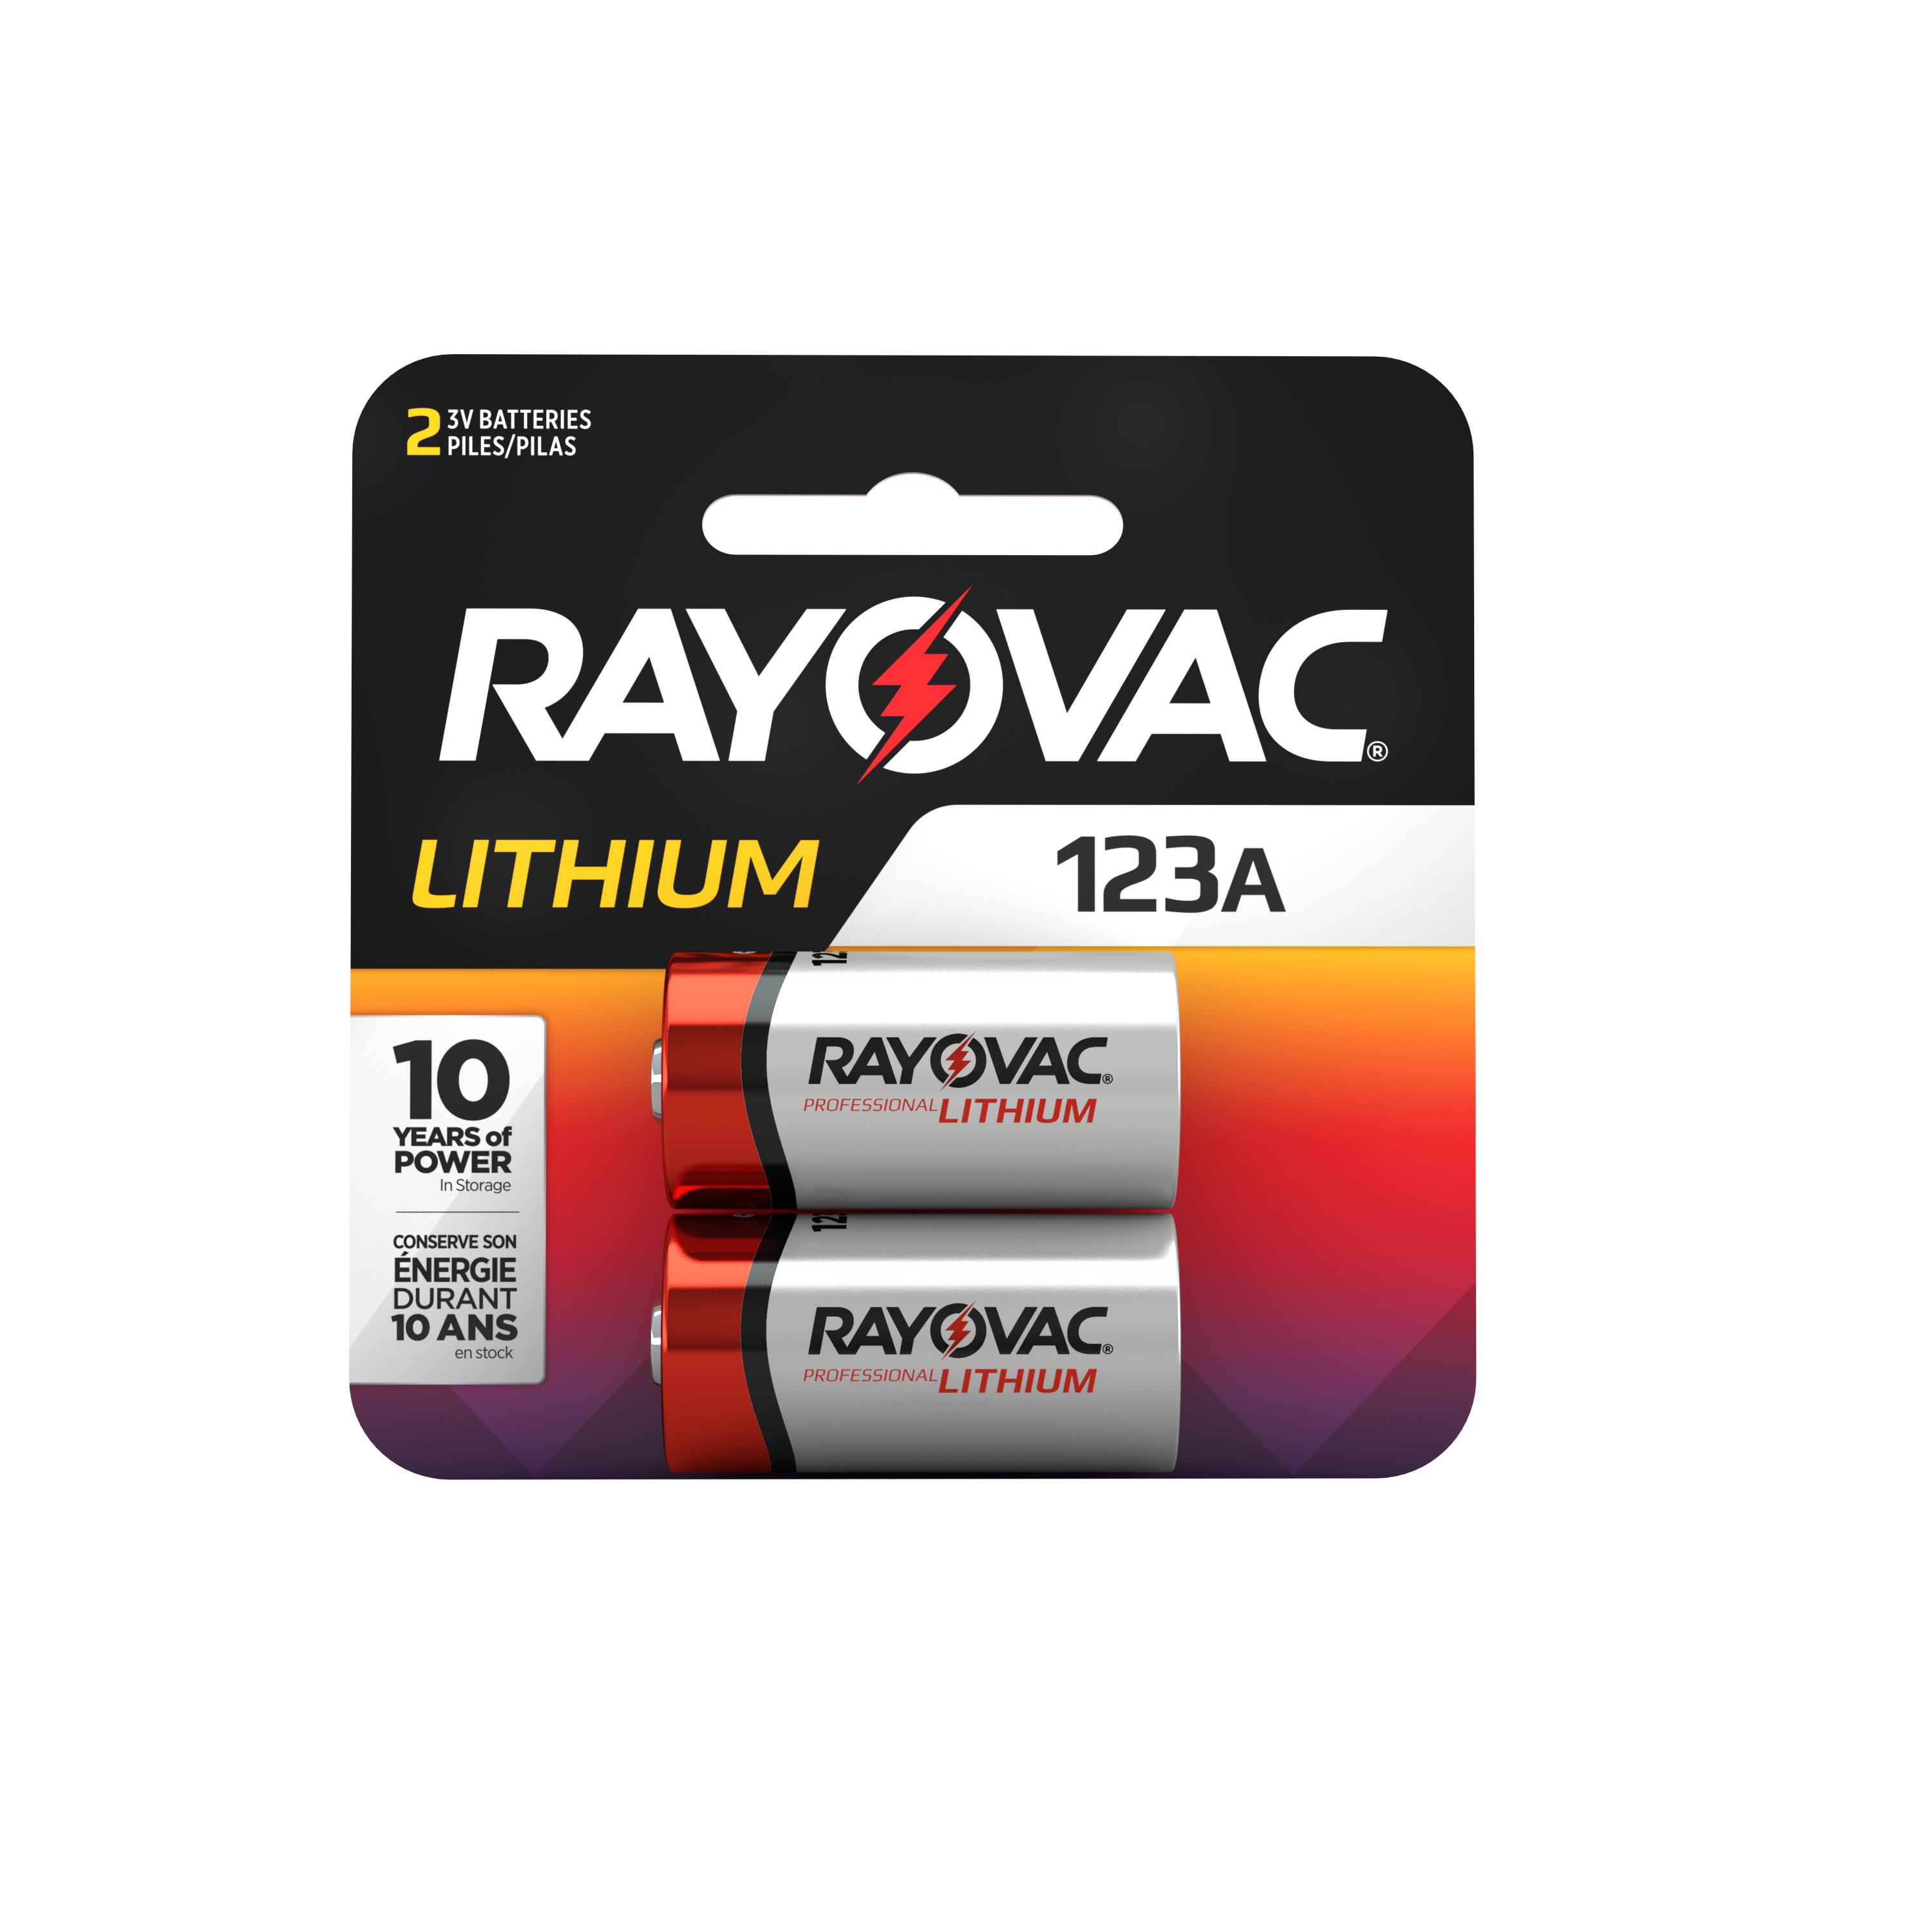 rayovac instant battery charger for micro usb devices with 2 additional lithium cr123a batteries. Black Bedroom Furniture Sets. Home Design Ideas